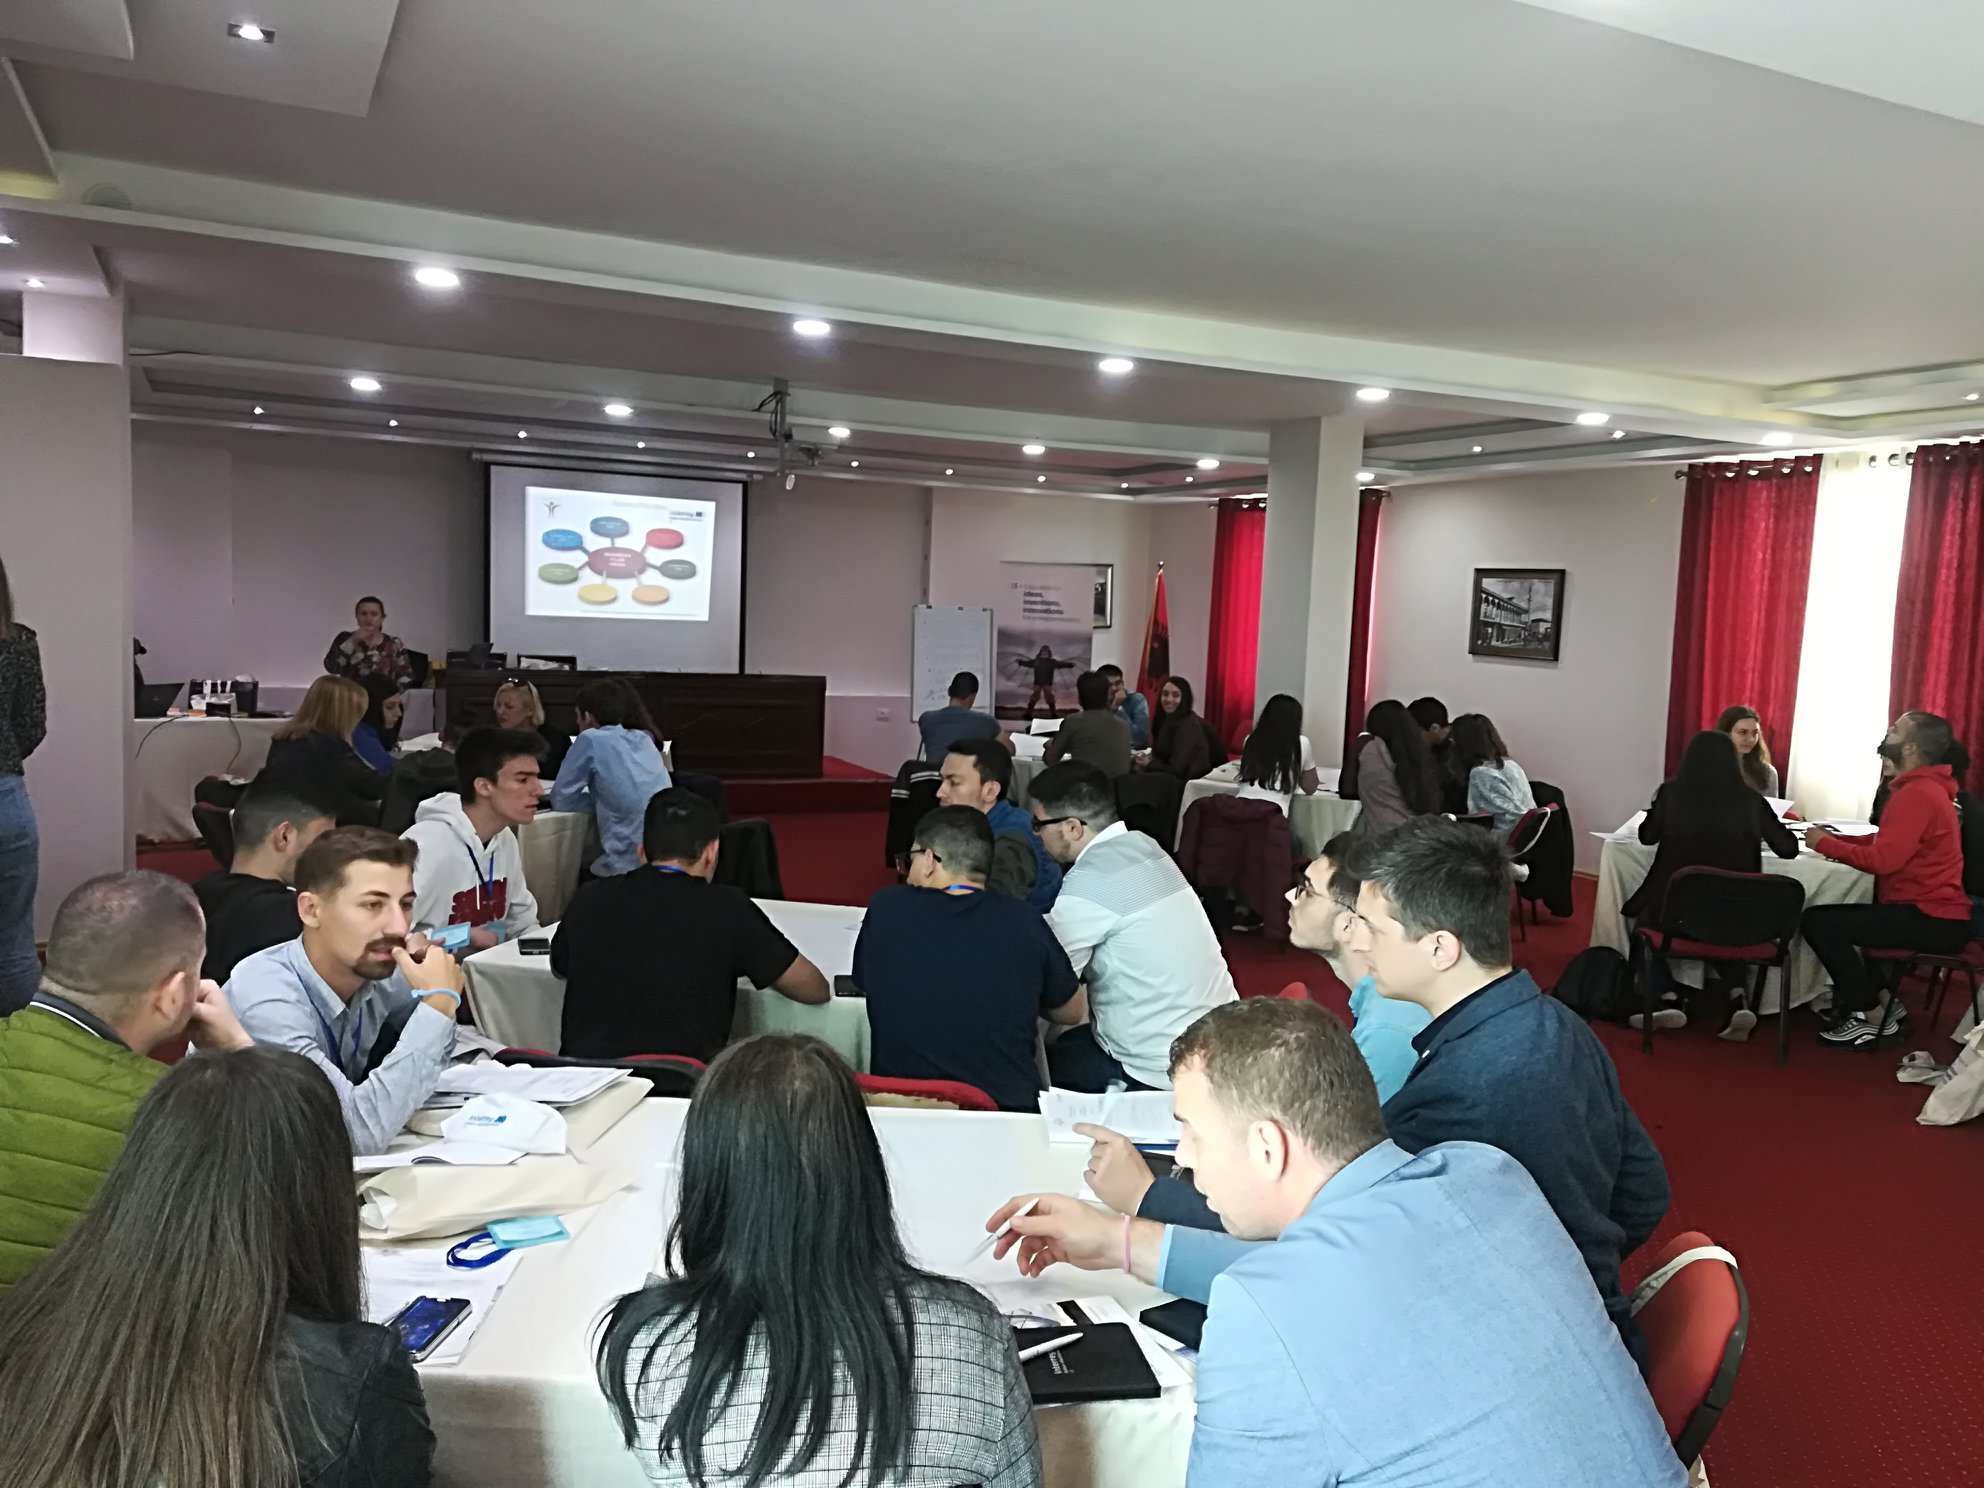 CKM's Interreg: I3 ECO-Entrepreneurial Training in Durres, Albania